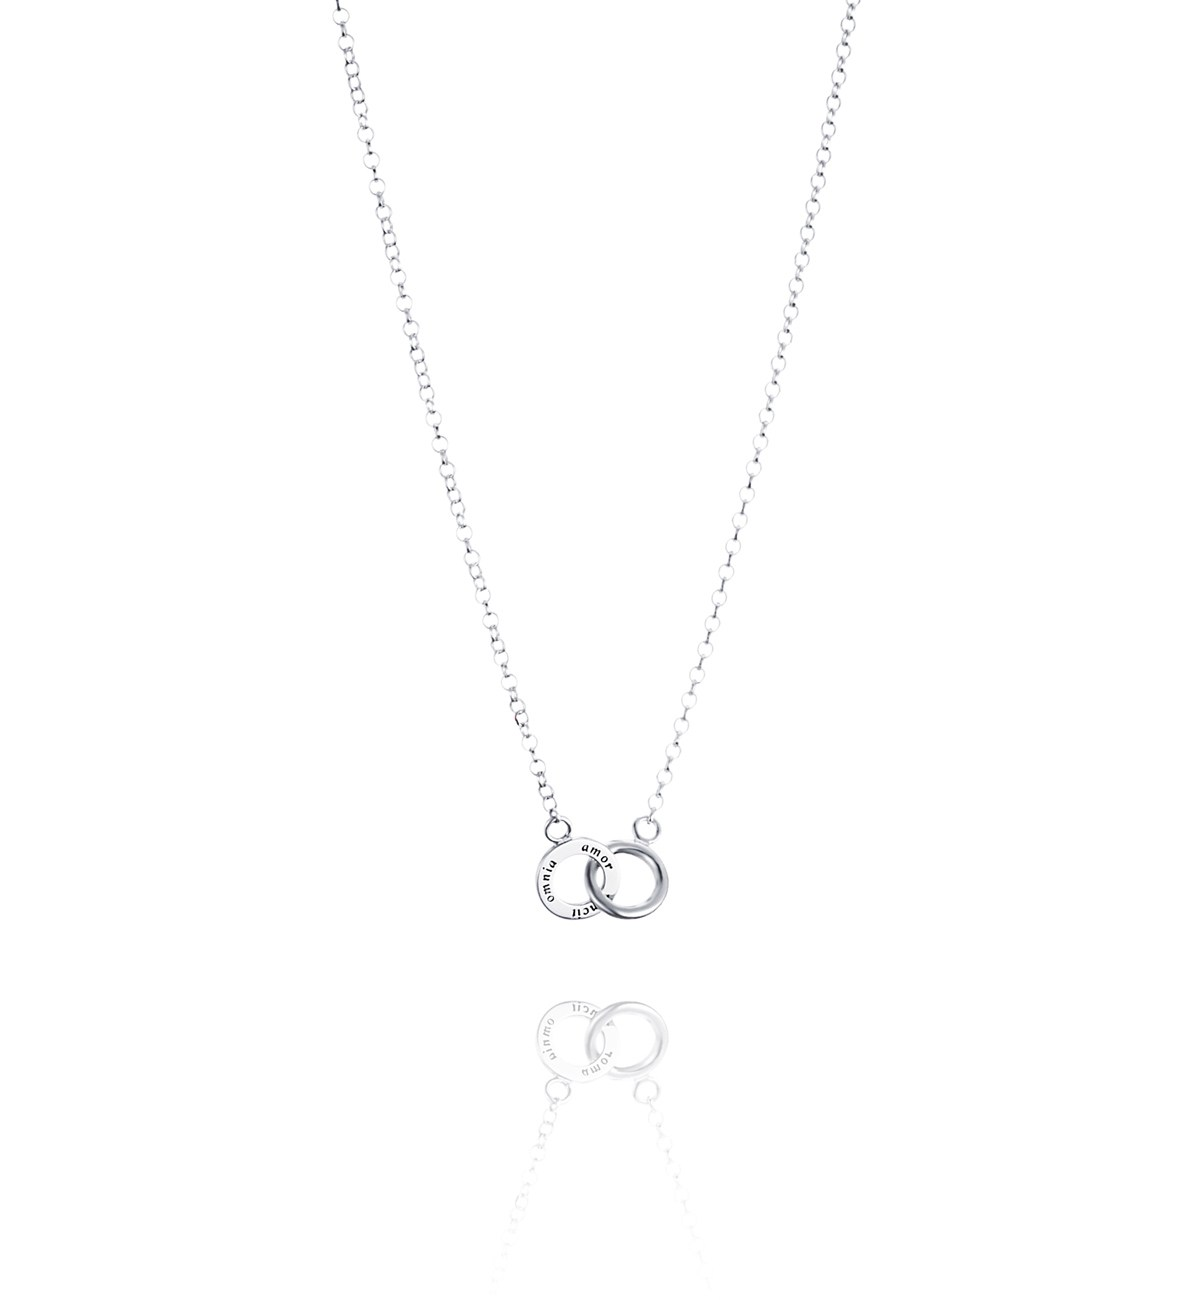 Efva Attling Twosome necklace silver